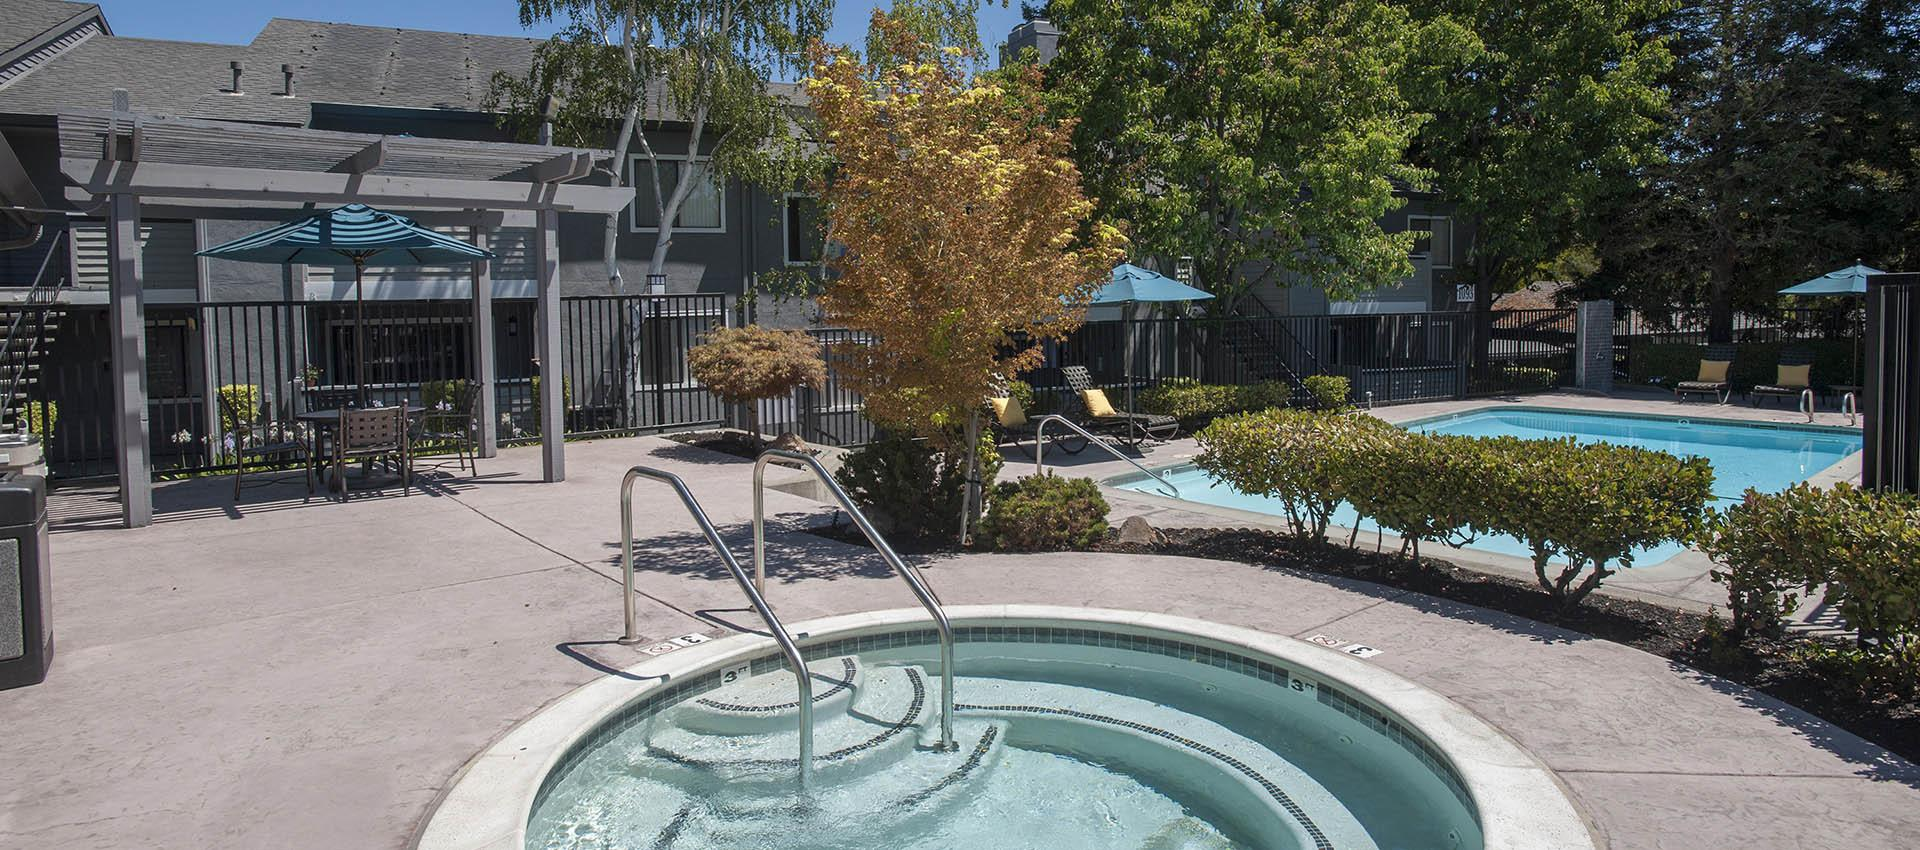 Hot Tub And Pool Deck at Plum Tree Apartment Homes in Martinez, California